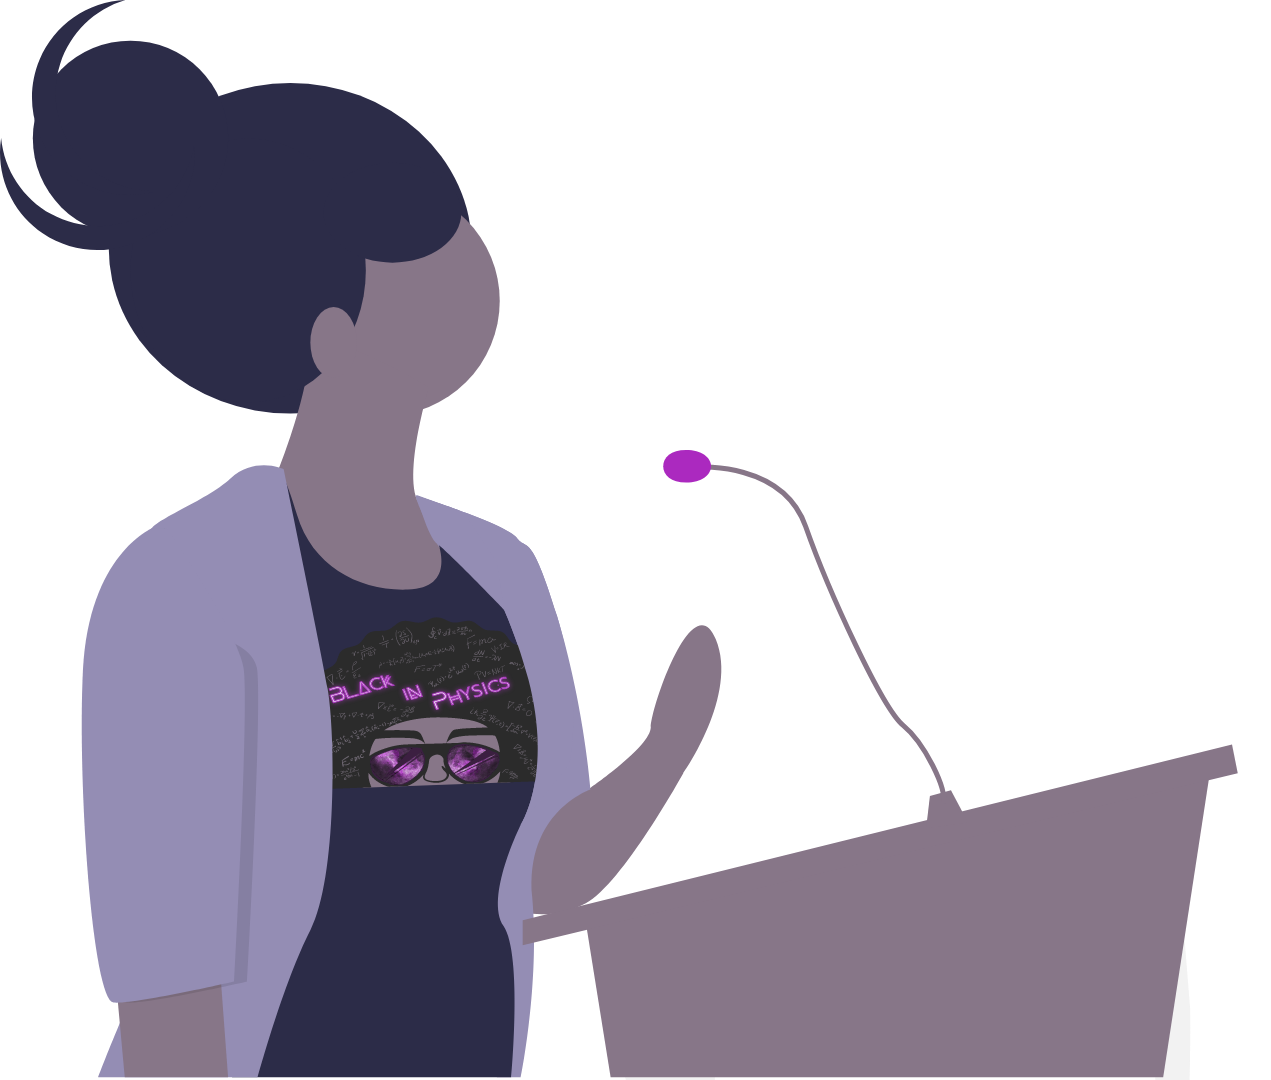 Illustration of a Black Female Scientist giving speech with BIP logo on shirt